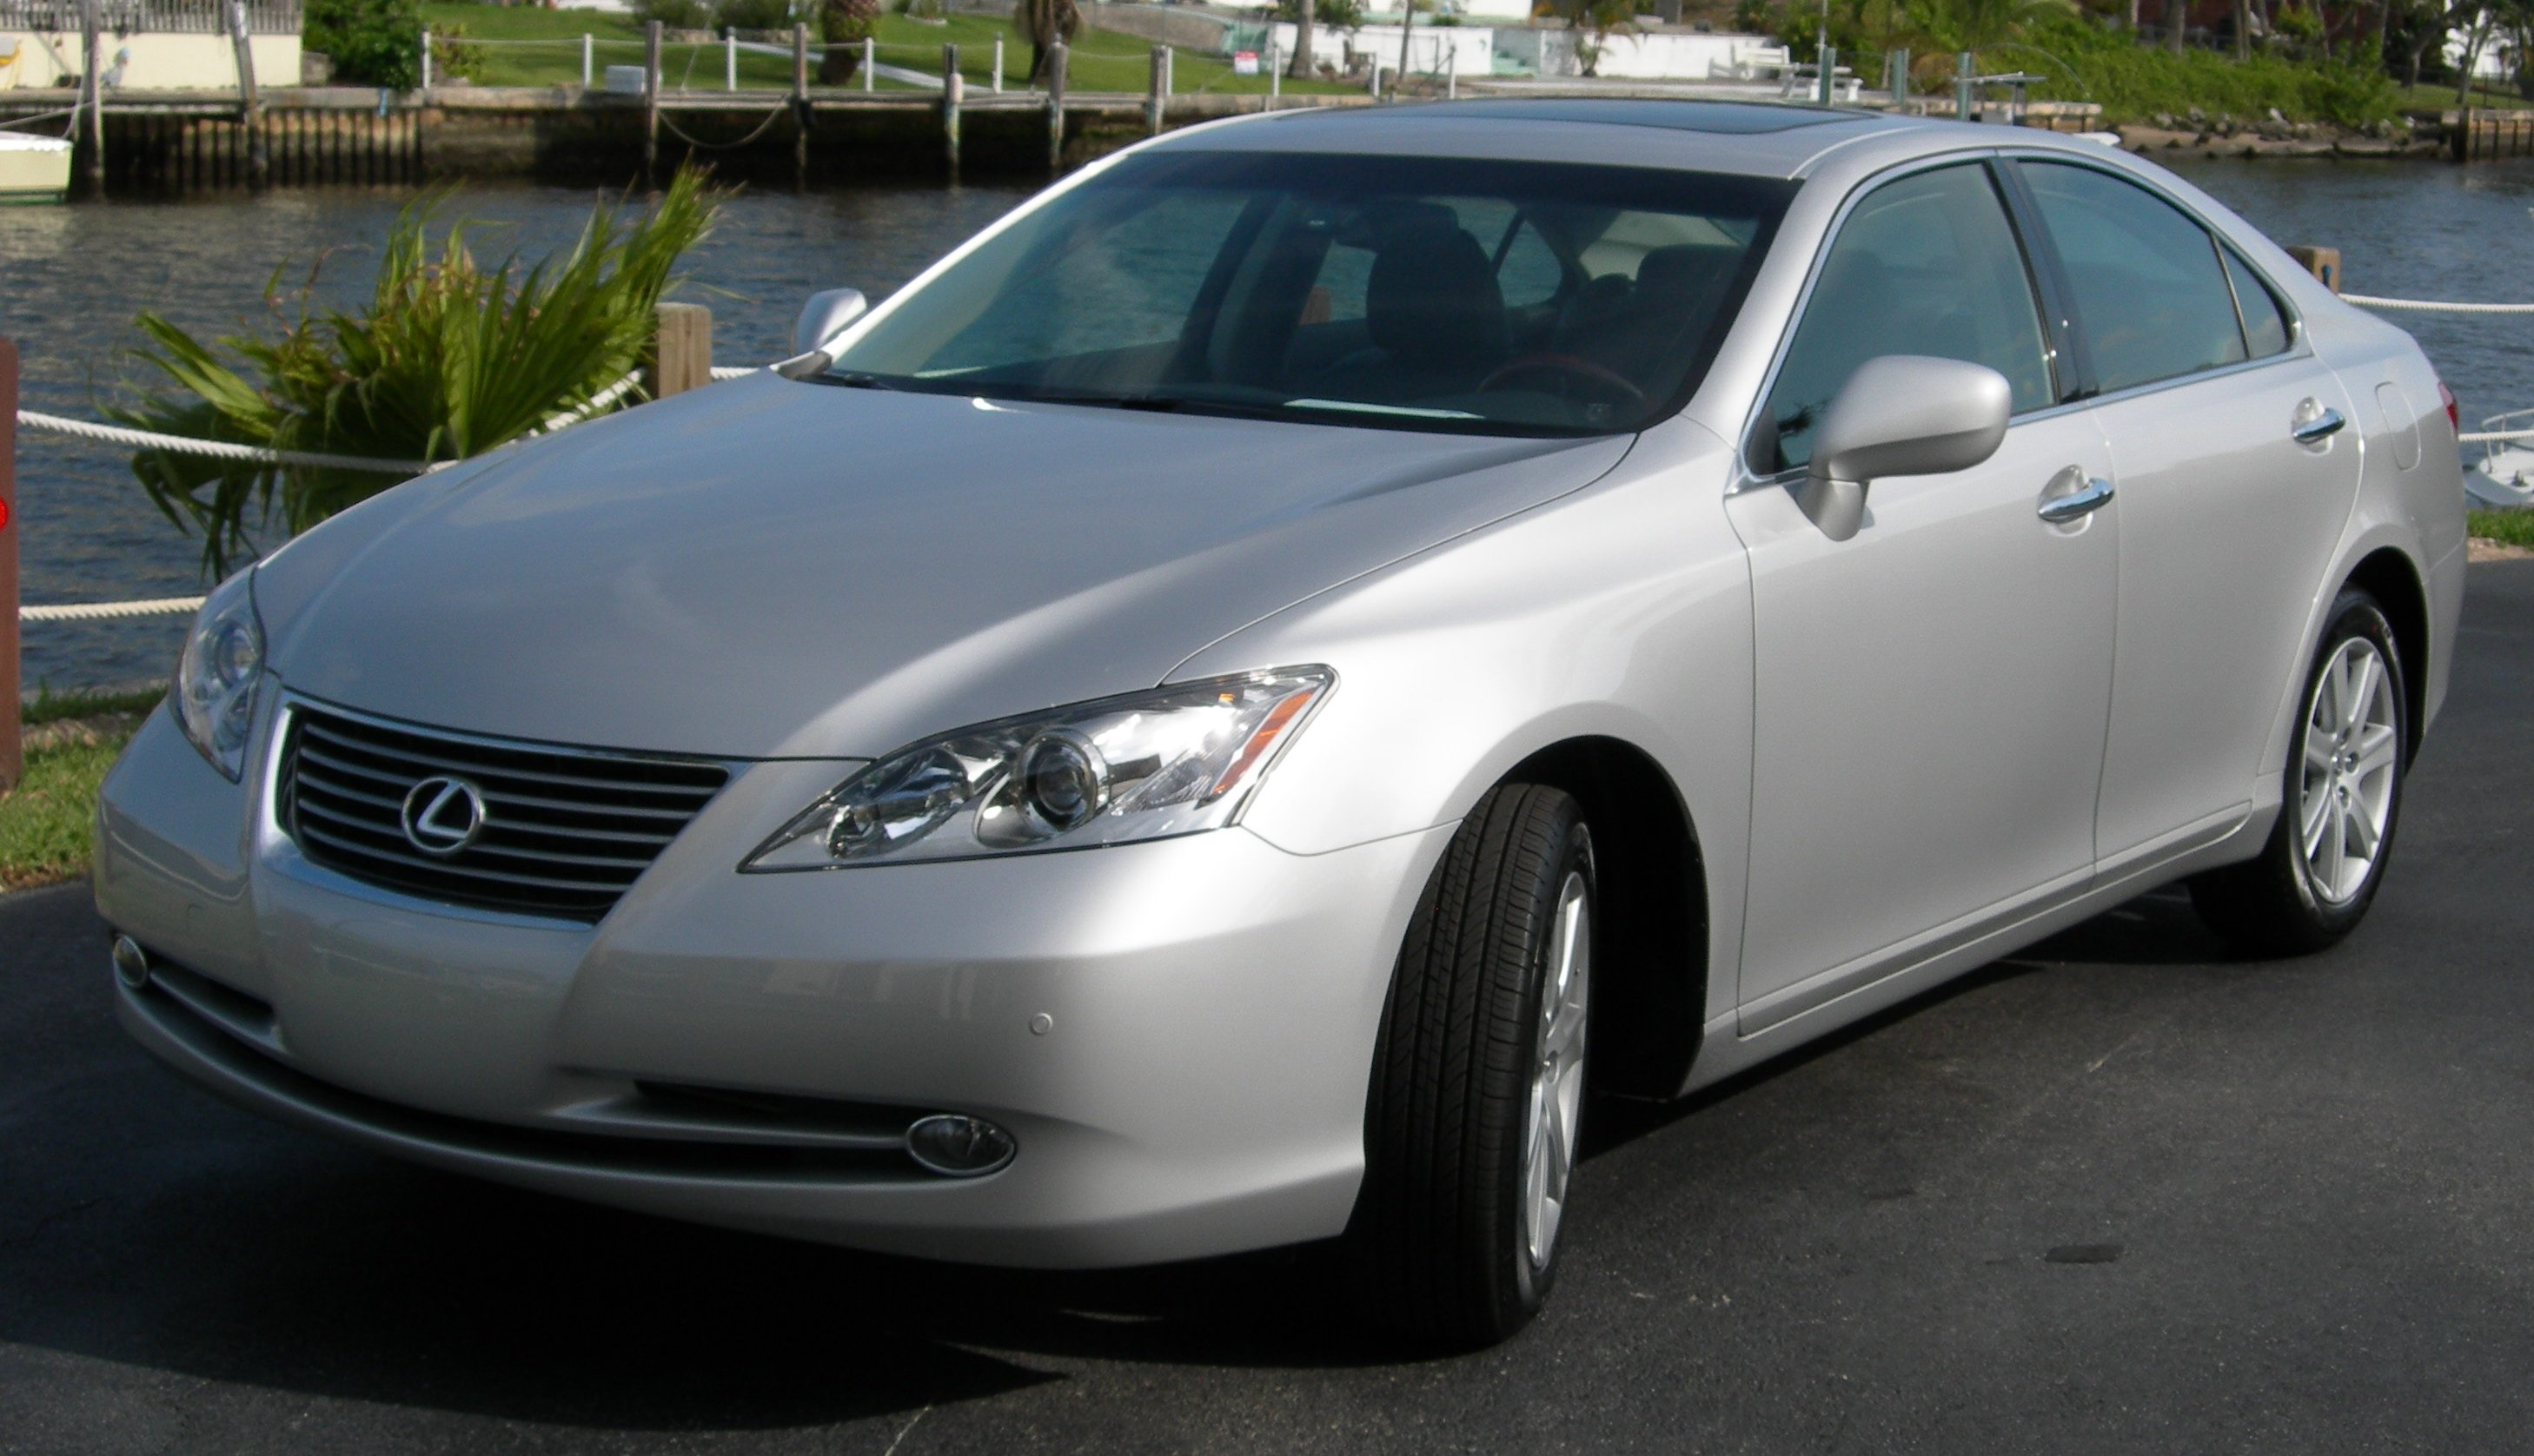 Captivating File:2007 Lexus ES 350